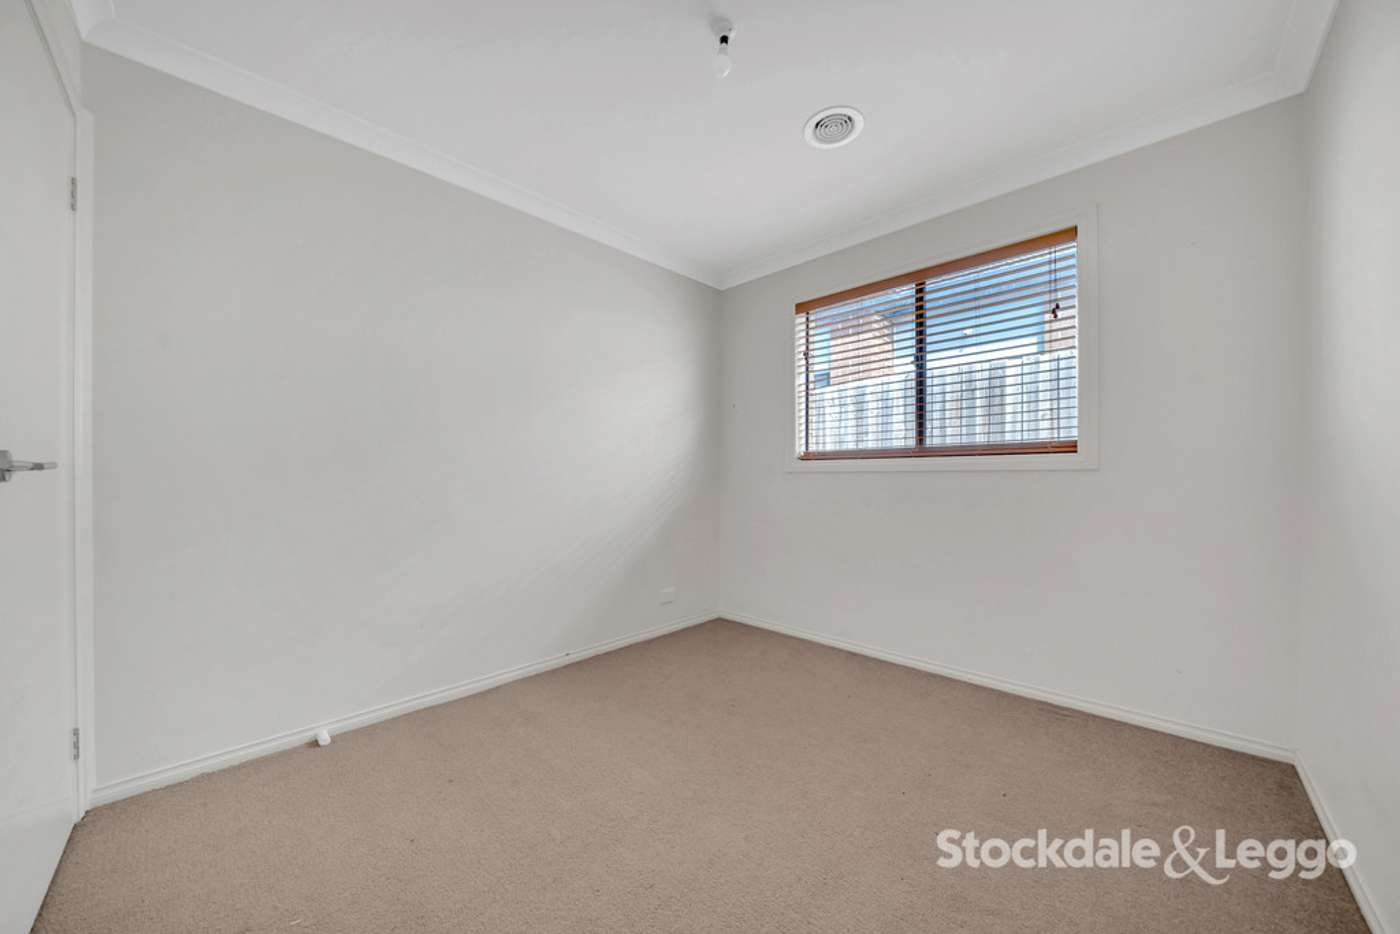 Seventh view of Homely house listing, 9 Chapman Drive, Wyndham Vale VIC 3024